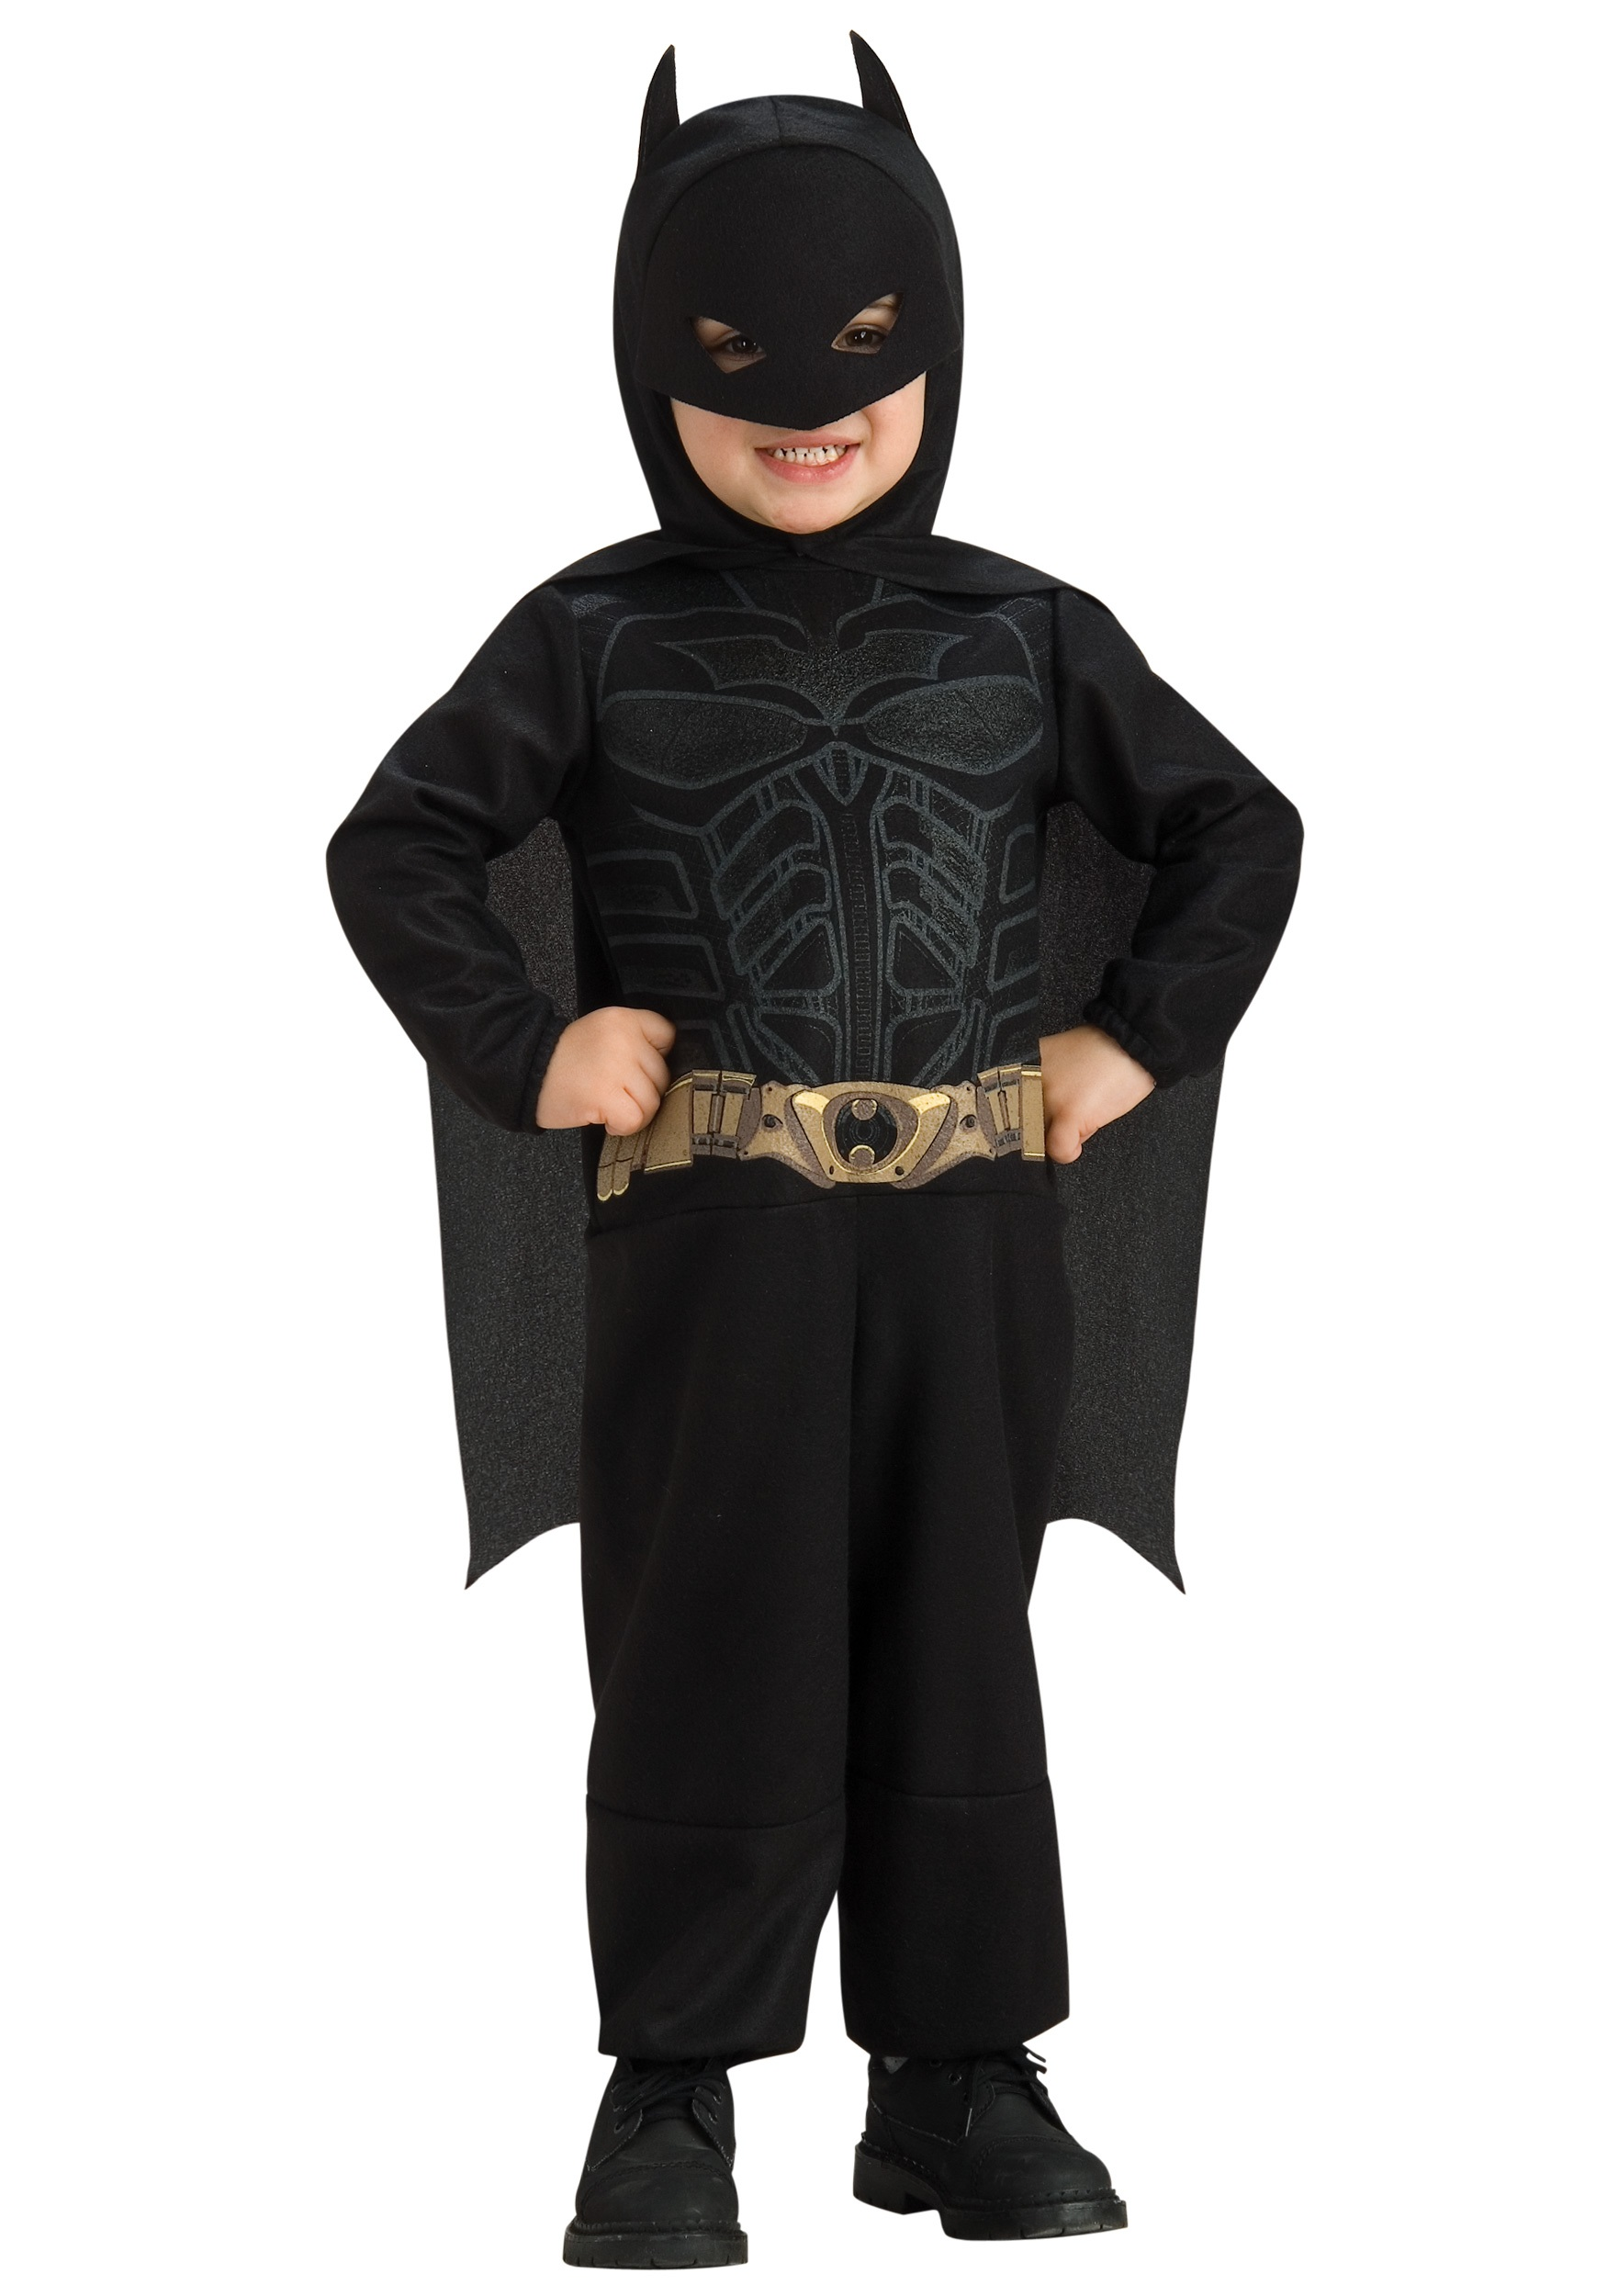 Toddler Dark Knight Rises Costume RU881589